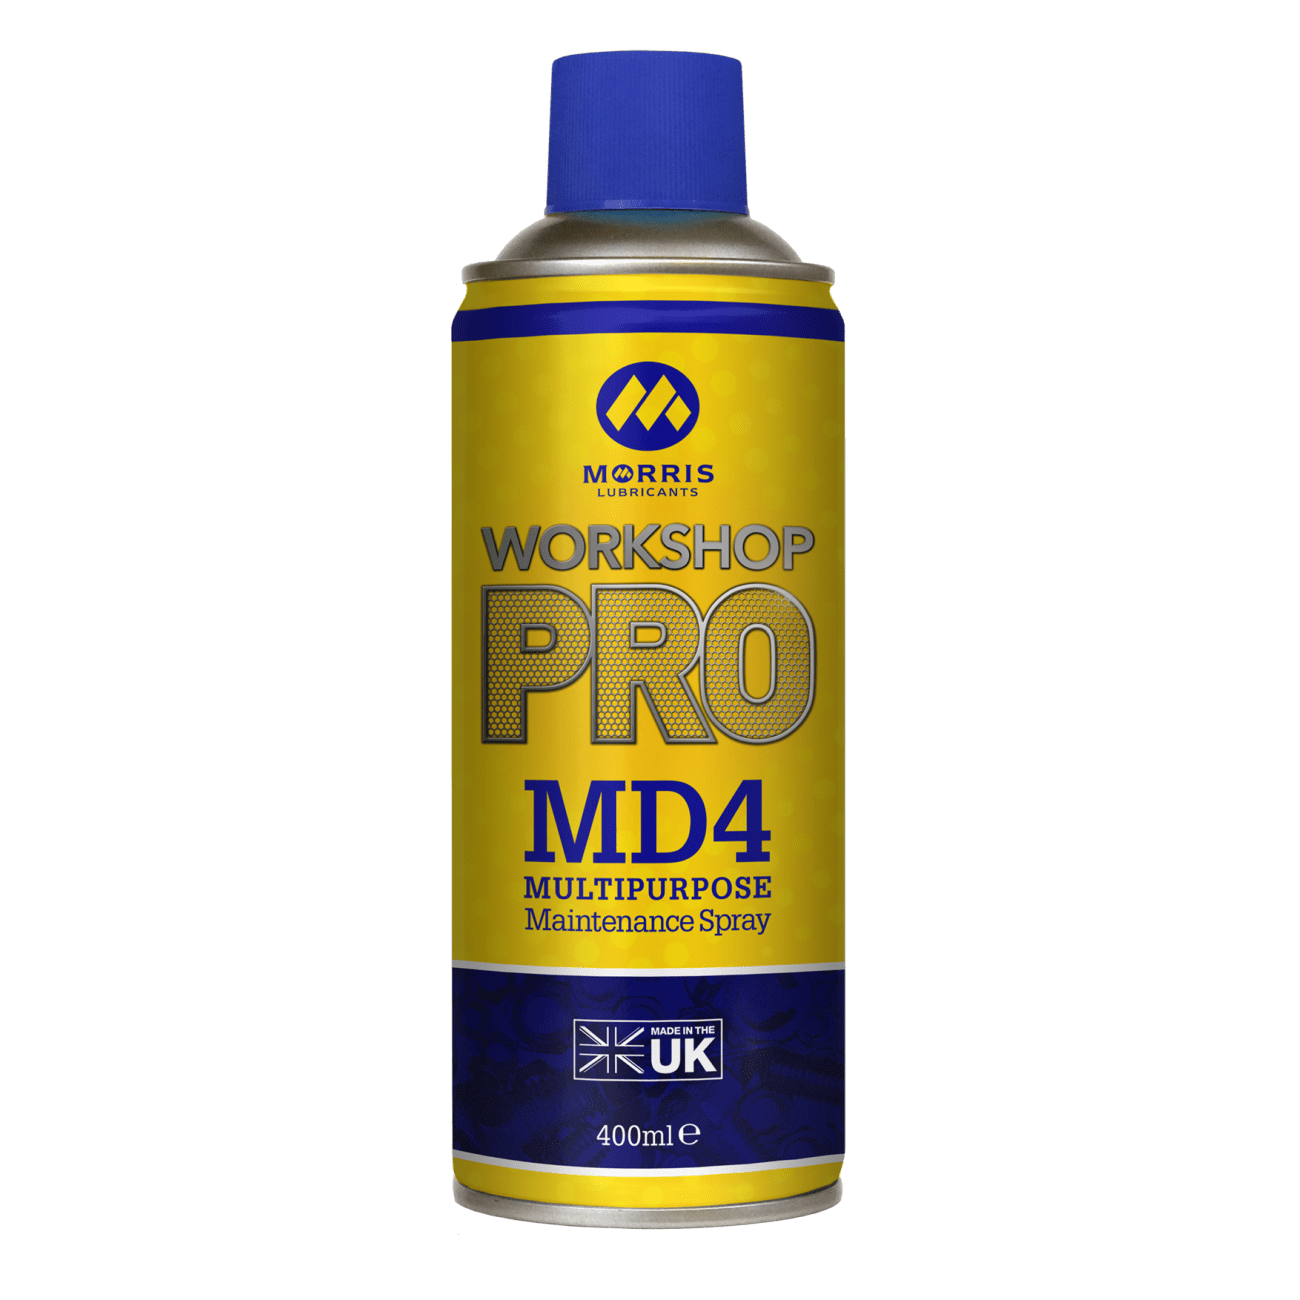 Workshop Pro MD4 Multipurpose Maintenance Spray